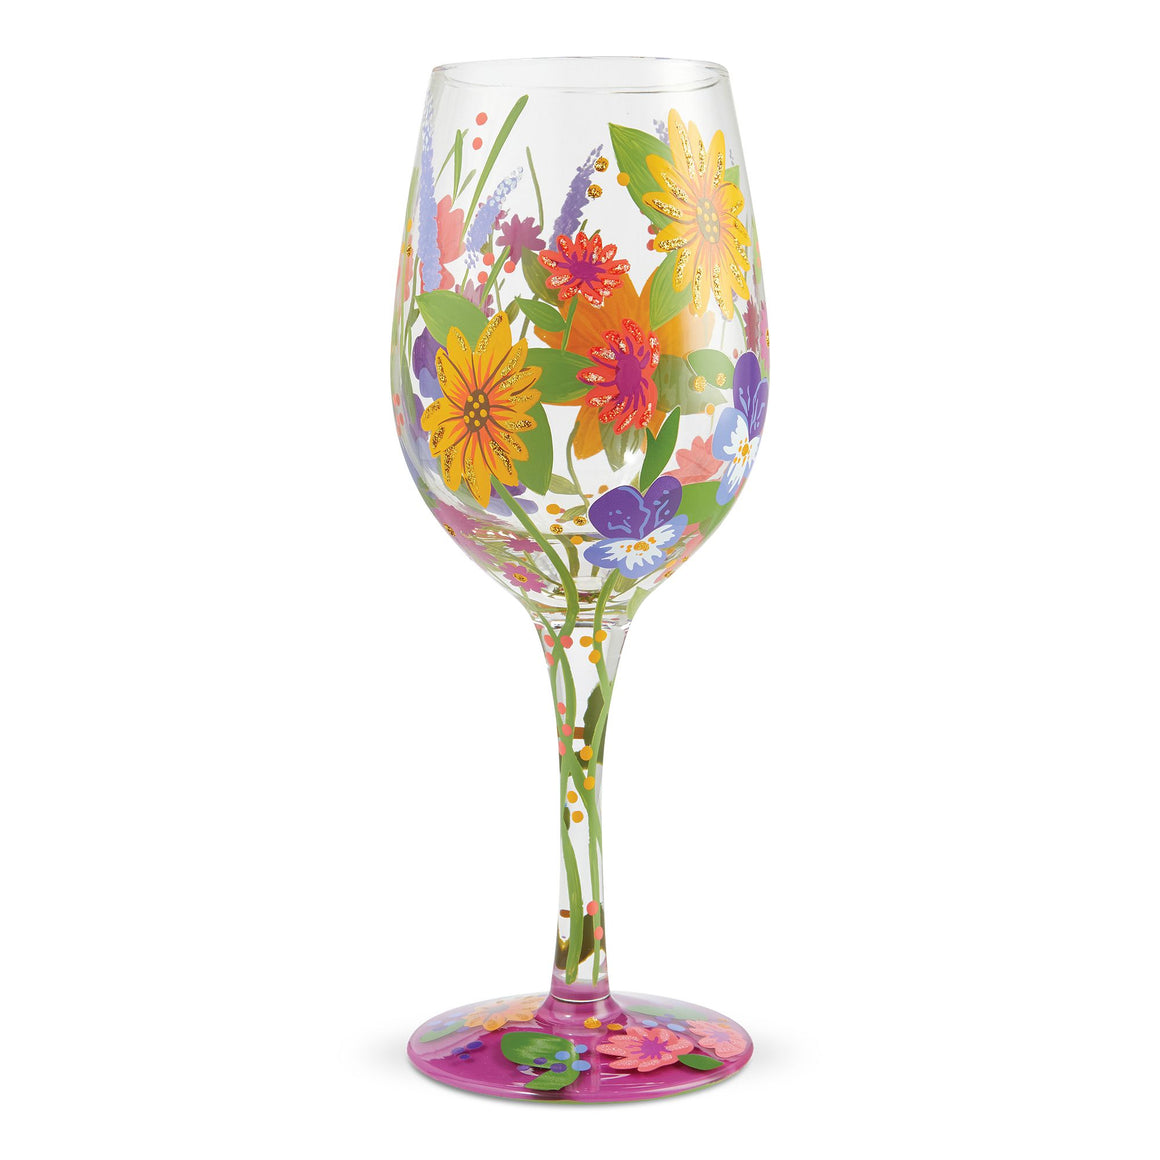 Lolita In the Garden Wine Glass